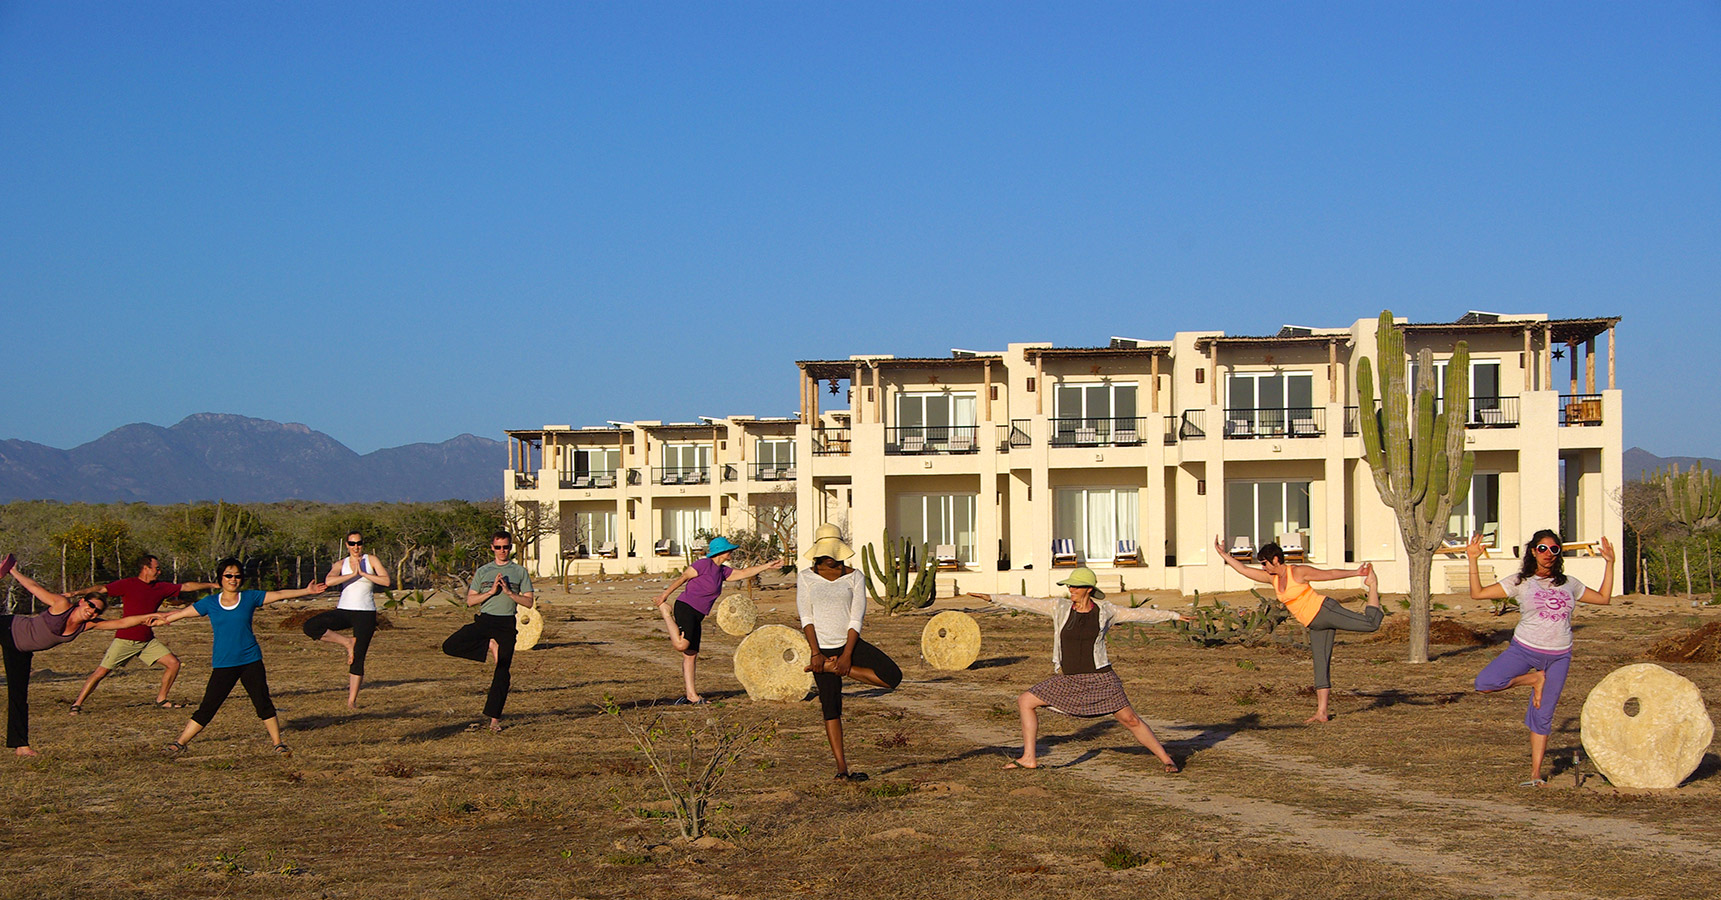 Yoga Poses in the Desert - Yoga Retreat - Mexico